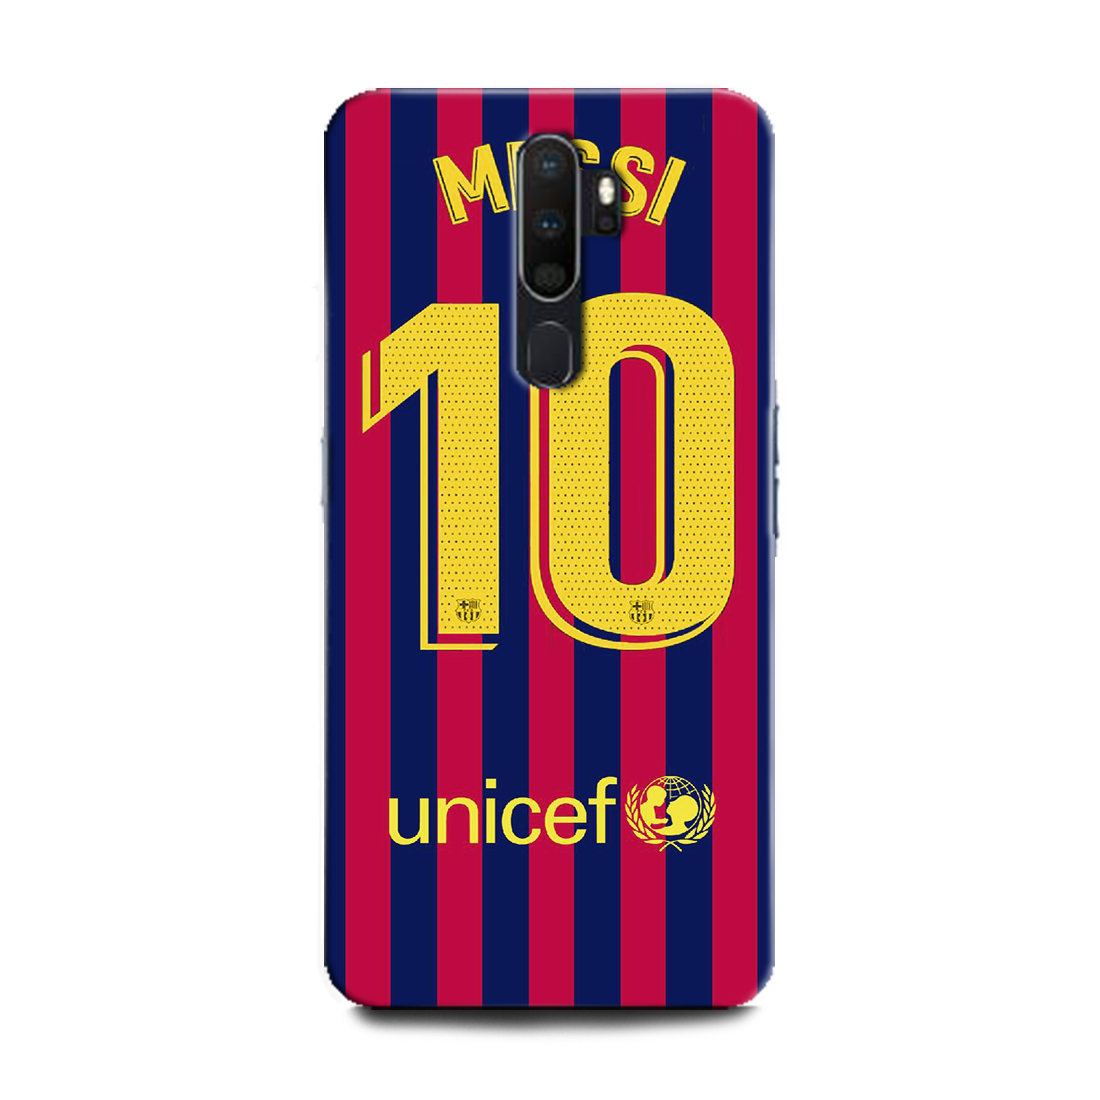 INDICRAFT Mobile Back Cover For Oppo A9 2020 / CPH1937 Hard Case (Messi, Lione Messi, Football, Messi 10, Barcelona, Lione Messi Jersey, Sports) (AB-OppoA92020-0195)